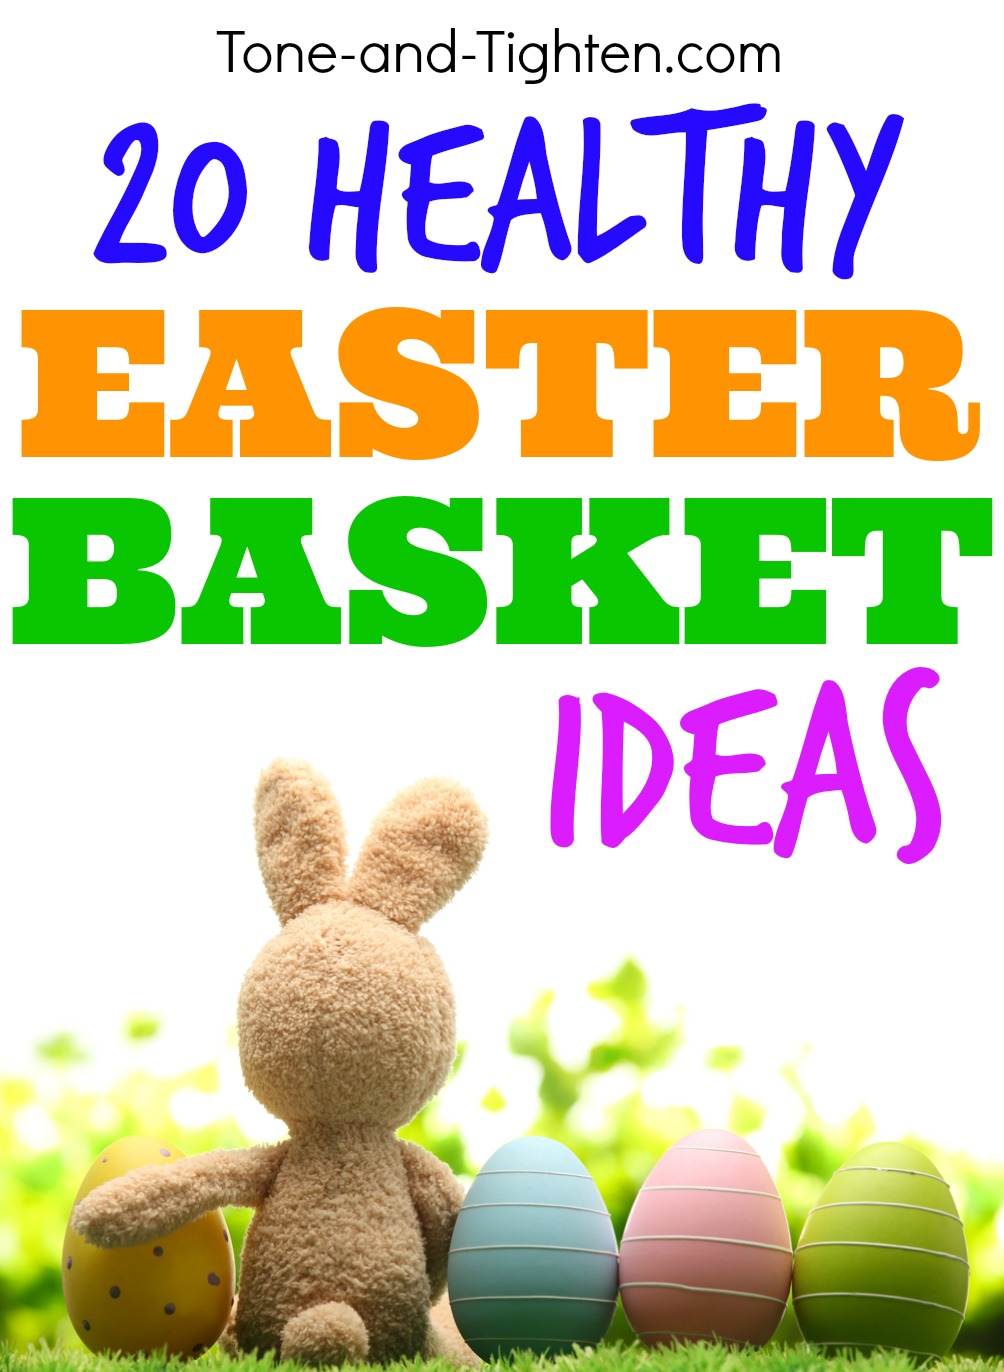 20 healthy easter basket ideas under 15 tone and tighten healthy easter basket ideas for kids tone and negle Image collections